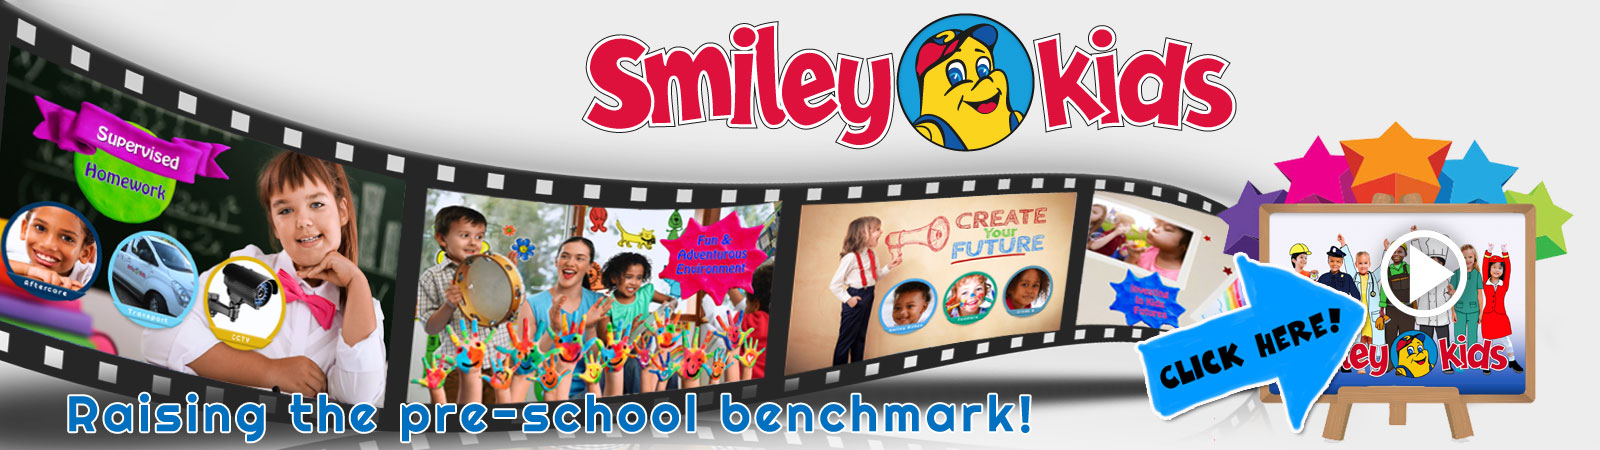 Smiley Kids Sandton Video